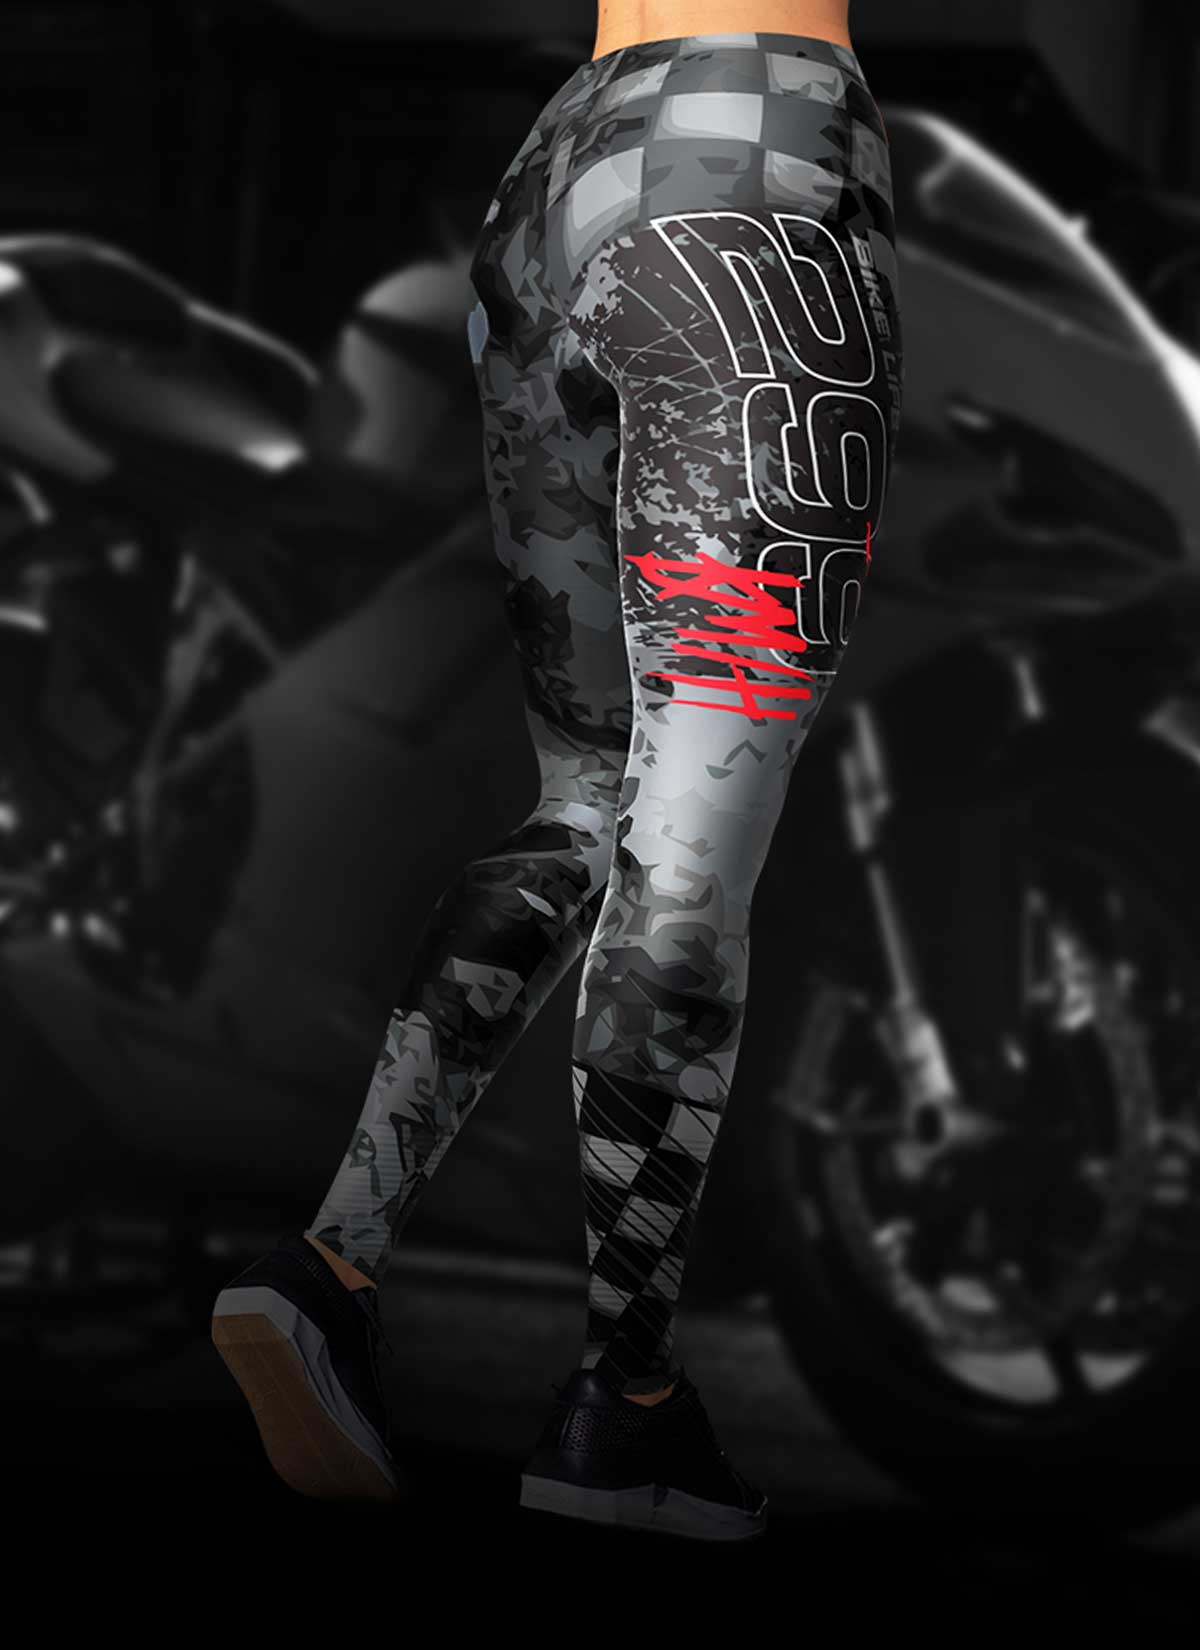 d98411277c6a3 299 KM/H Full Speed Motorcycle Leggings | Ridezza